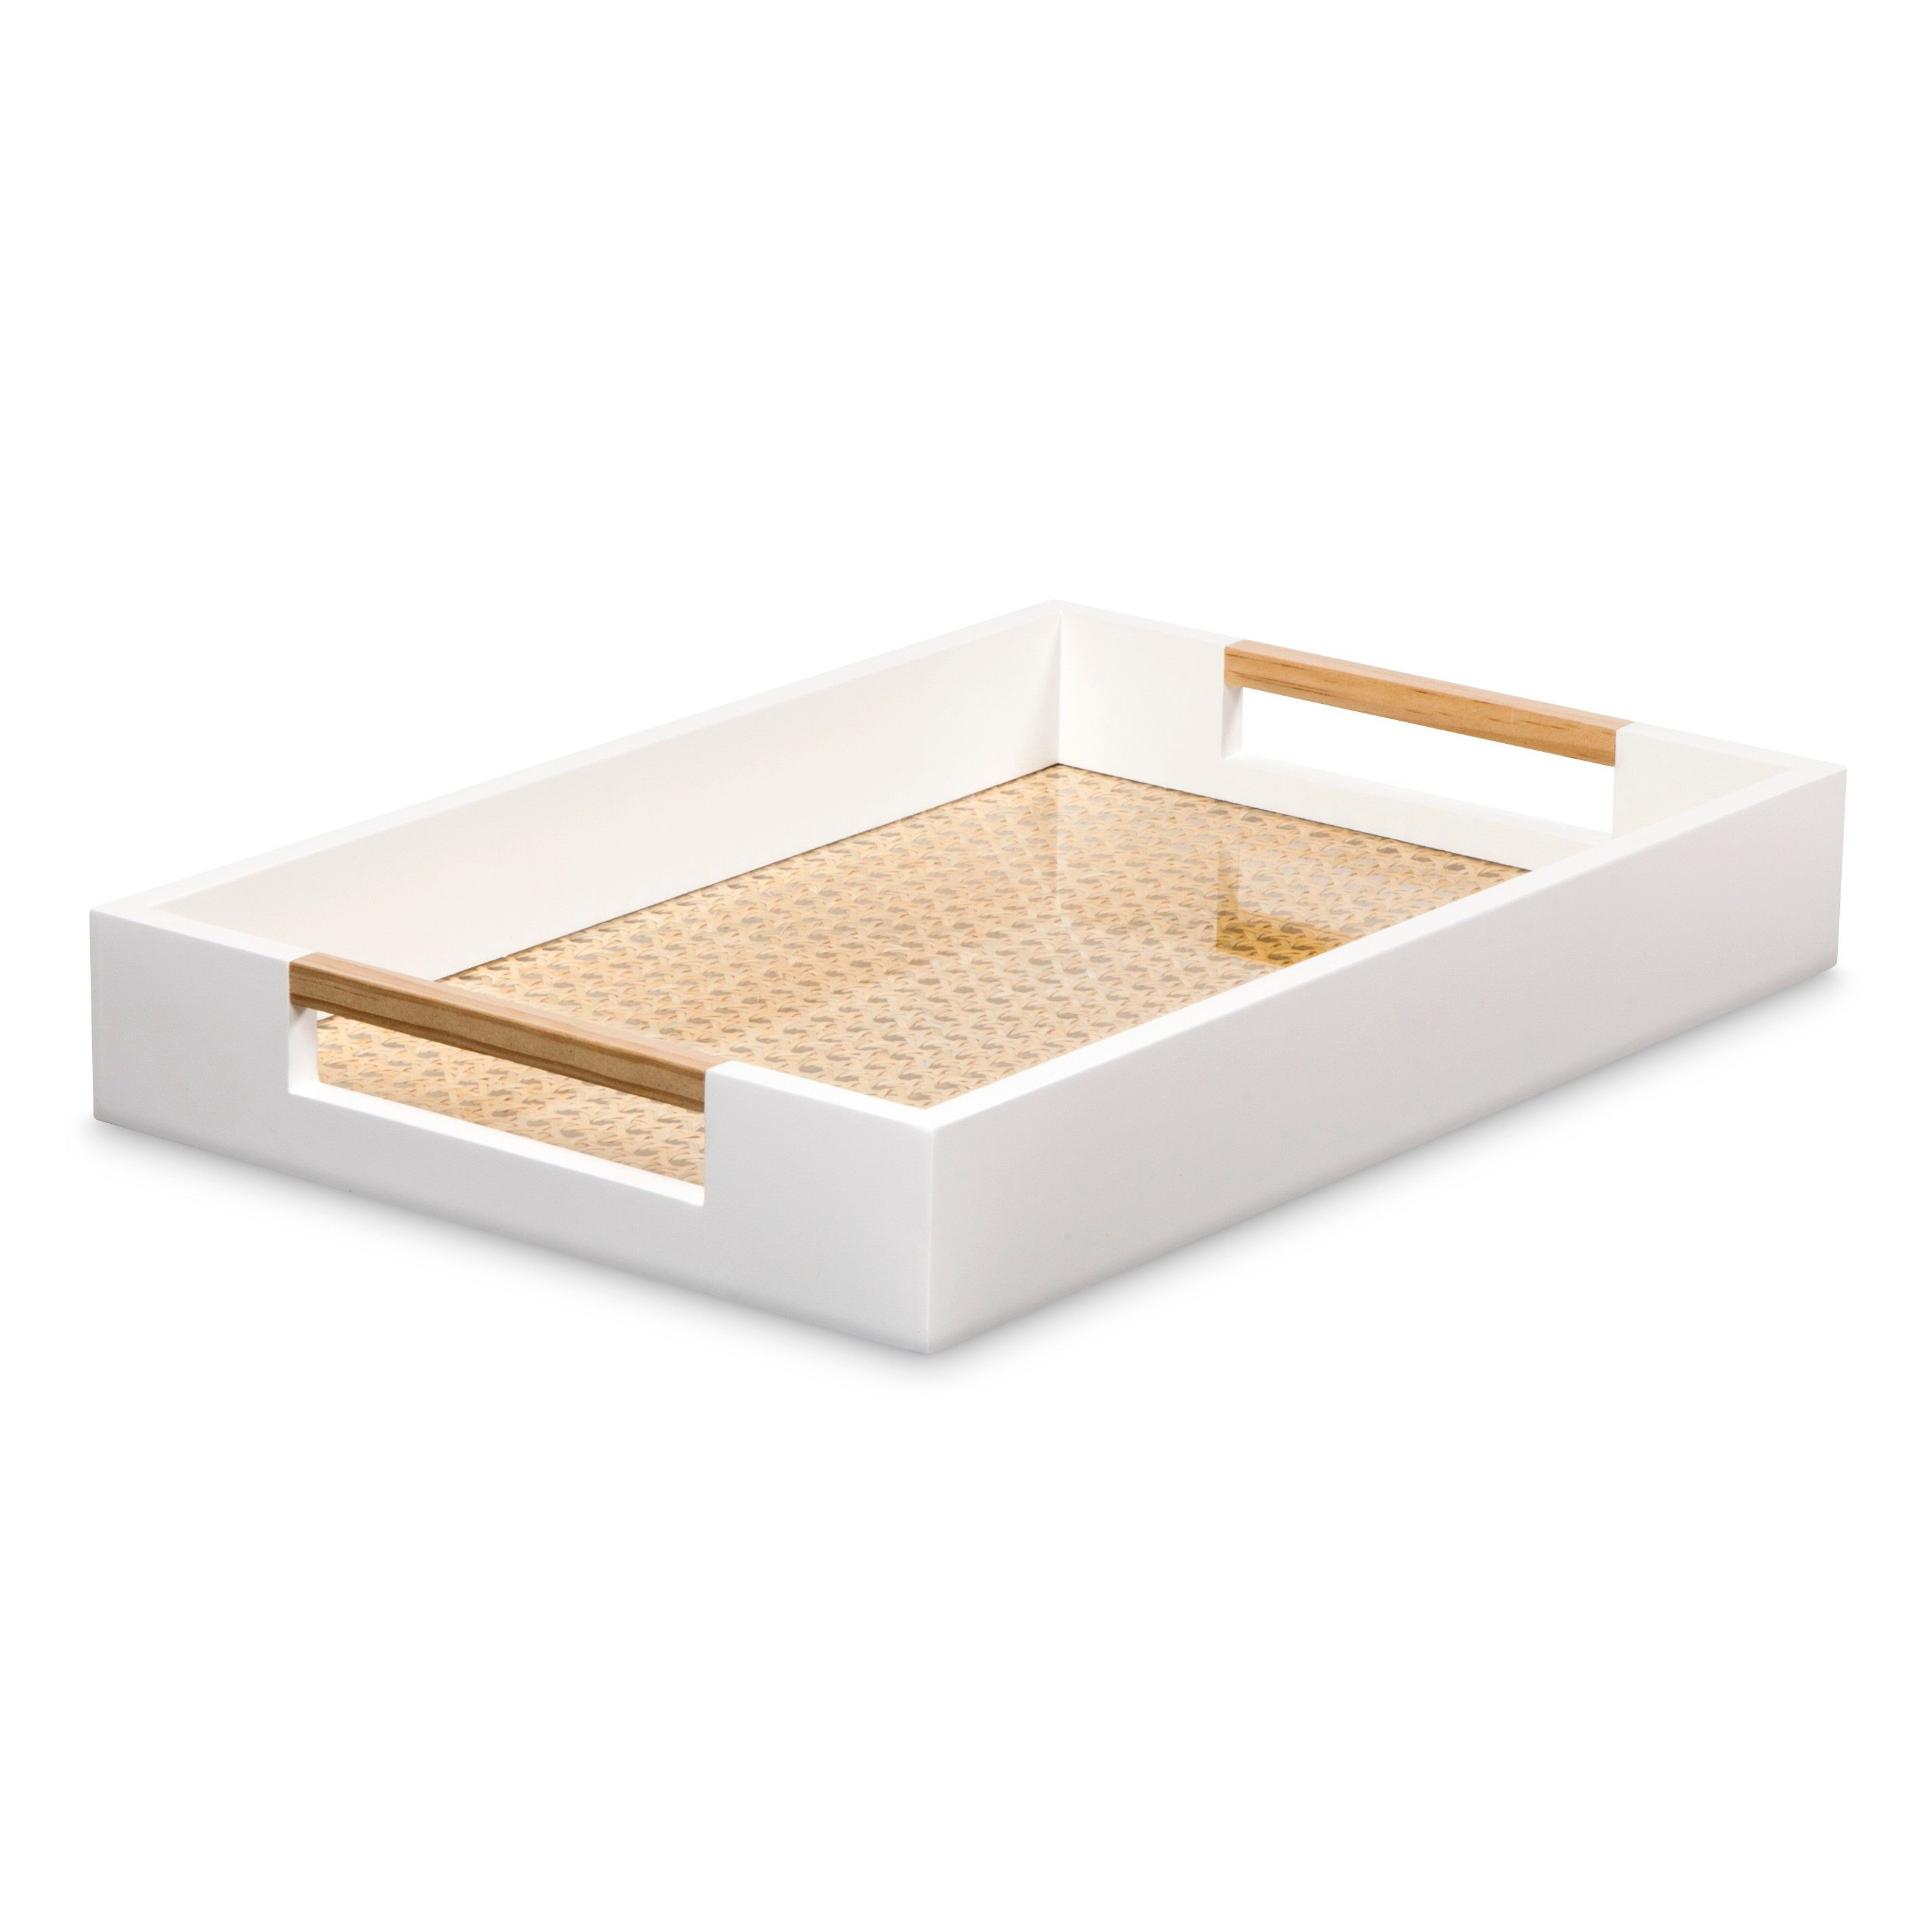 White Decorative Tray Mesmerizing Threshold™ Decorative Tray With Cane Detail  White  Target  Bed Review